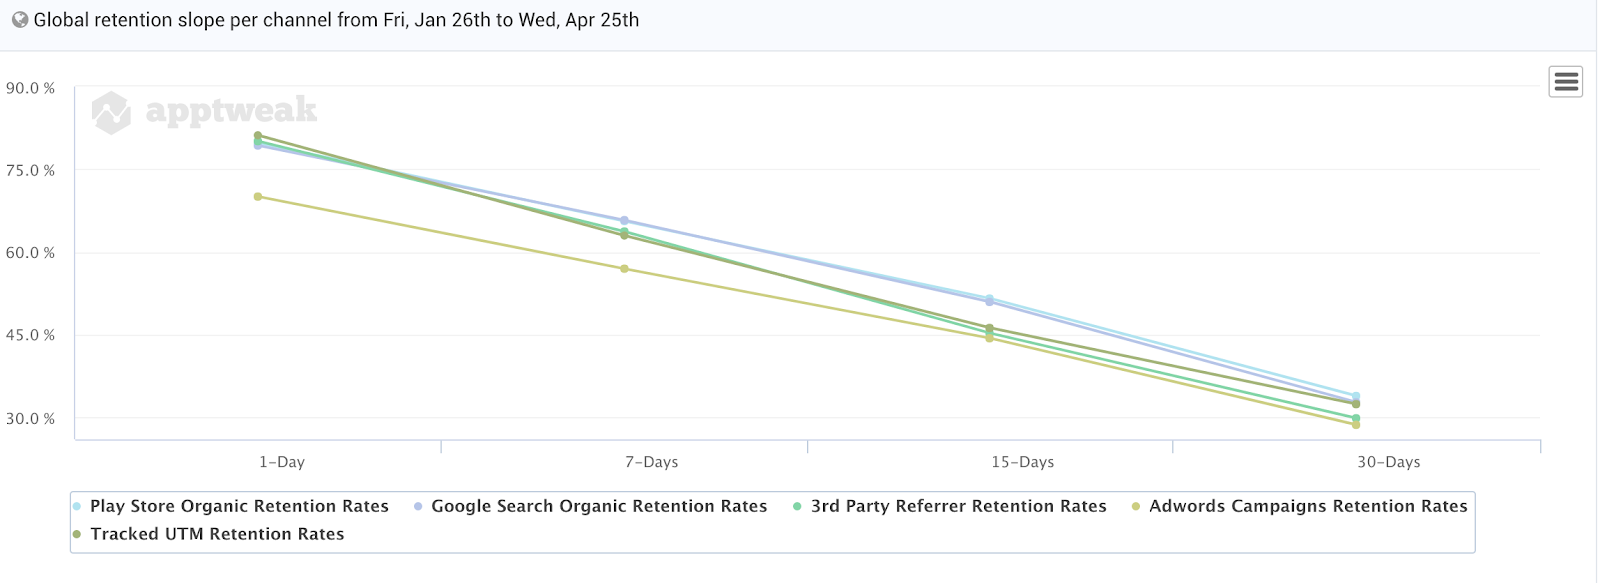 Google Play Retention Slope Comparison